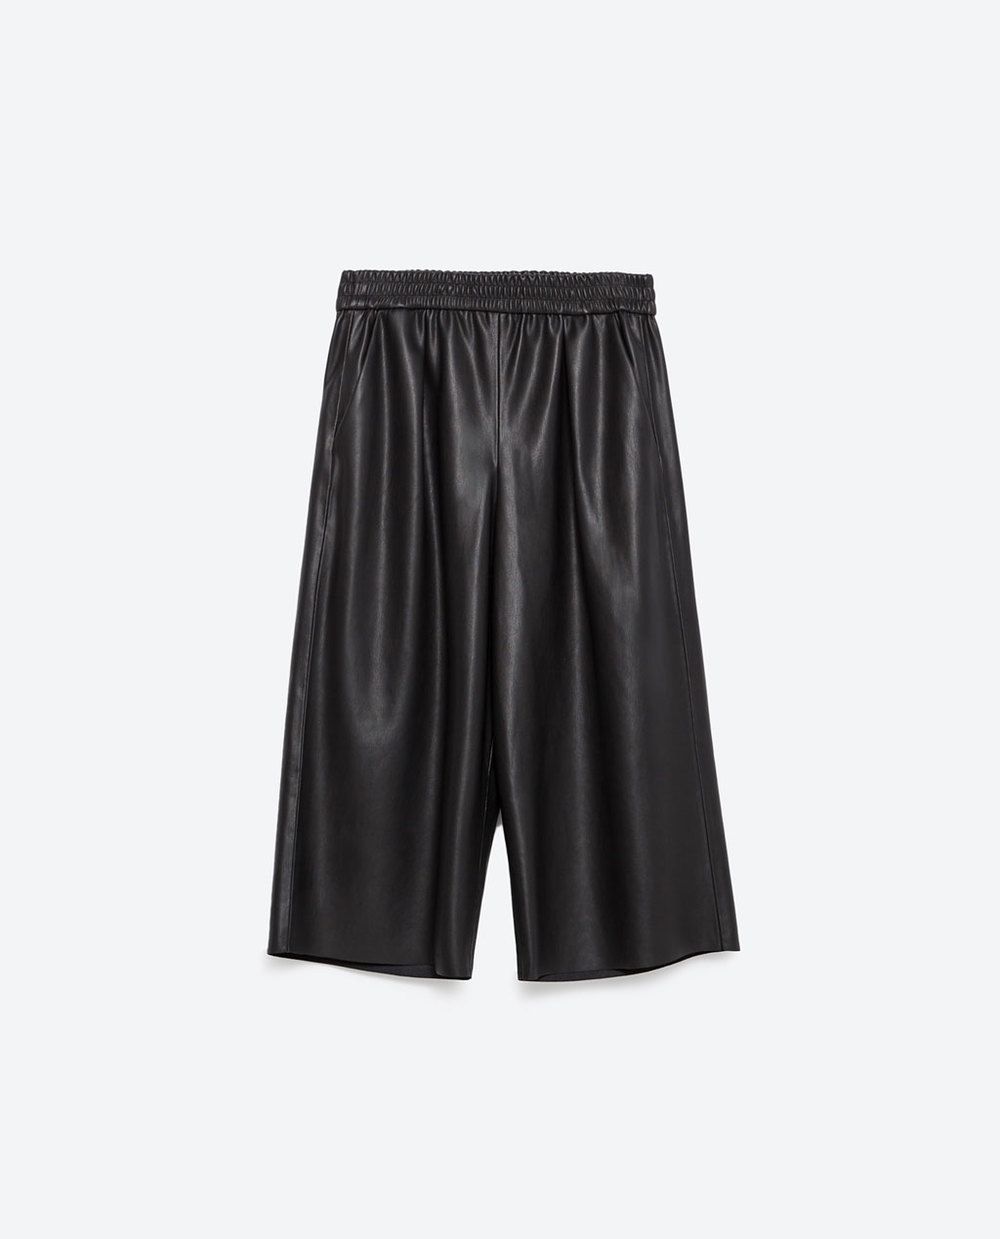 Faux Leather Culottes. Available in two colors. Zara. $39.